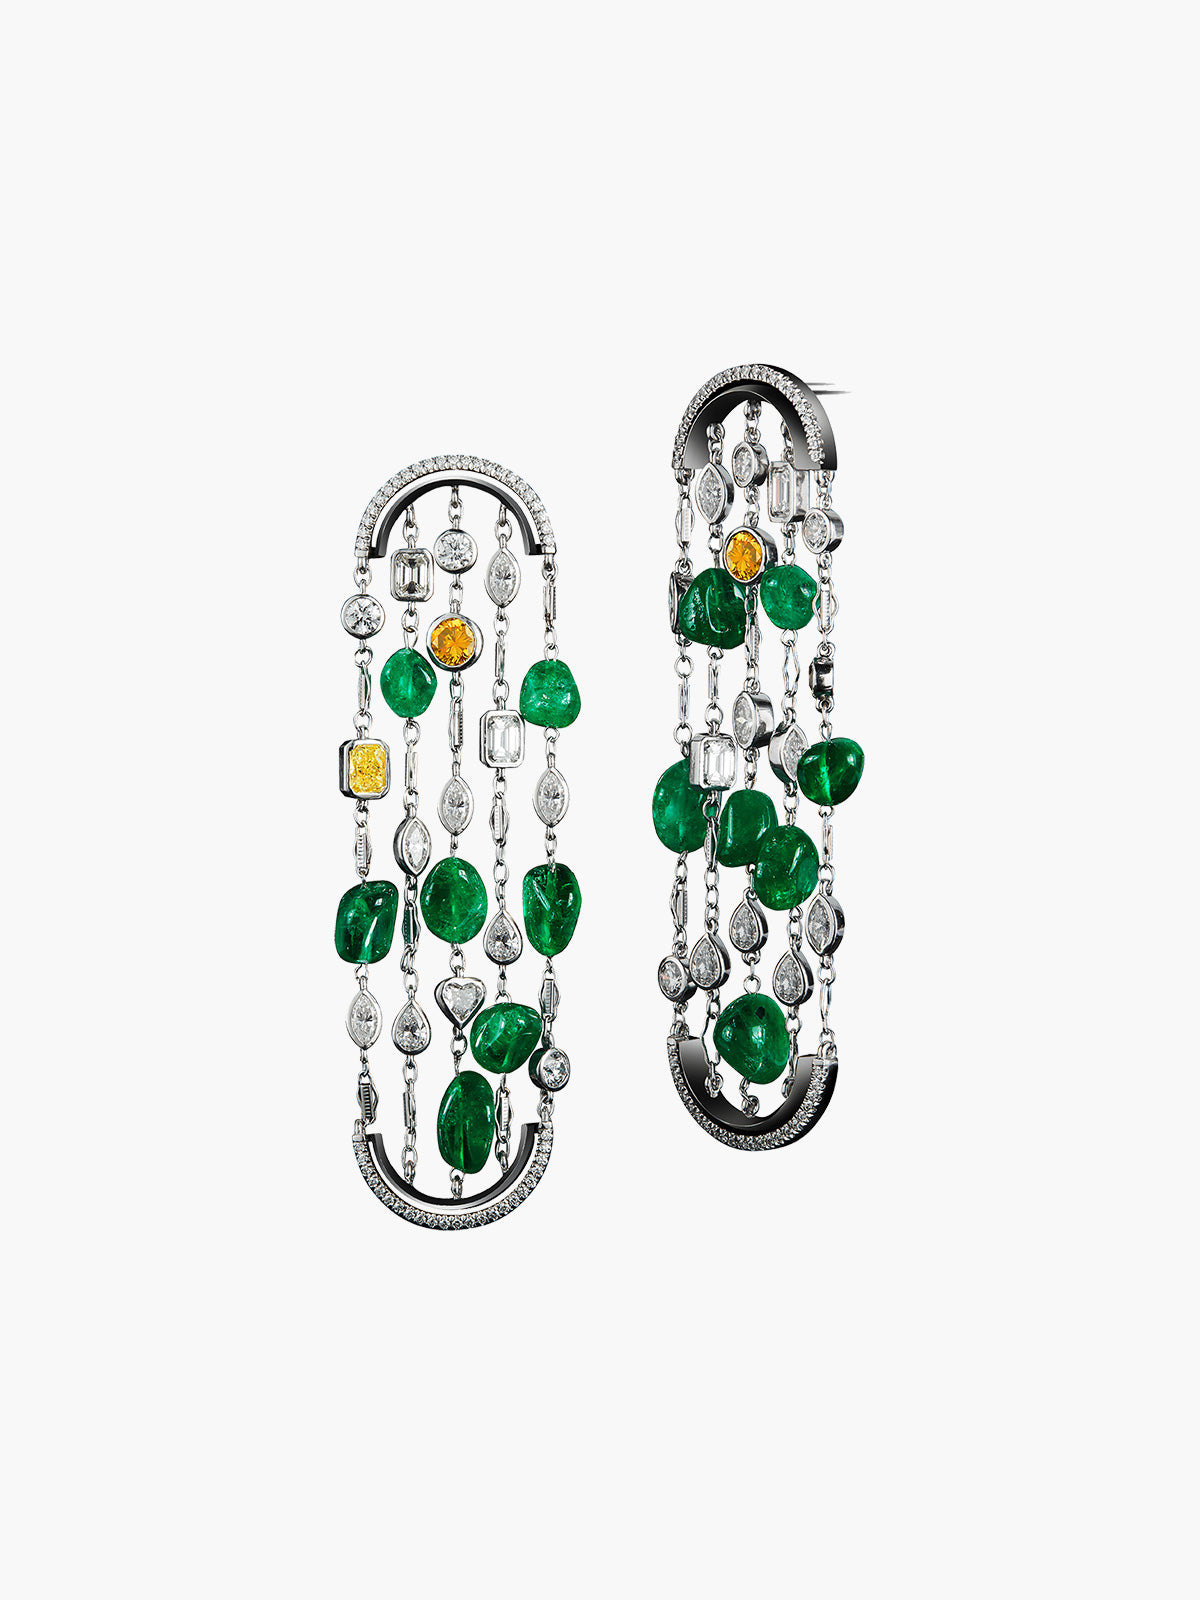 Arched Sautoir Tumble Bead Earrings Arched Sautoir Tumble Bead Earrings